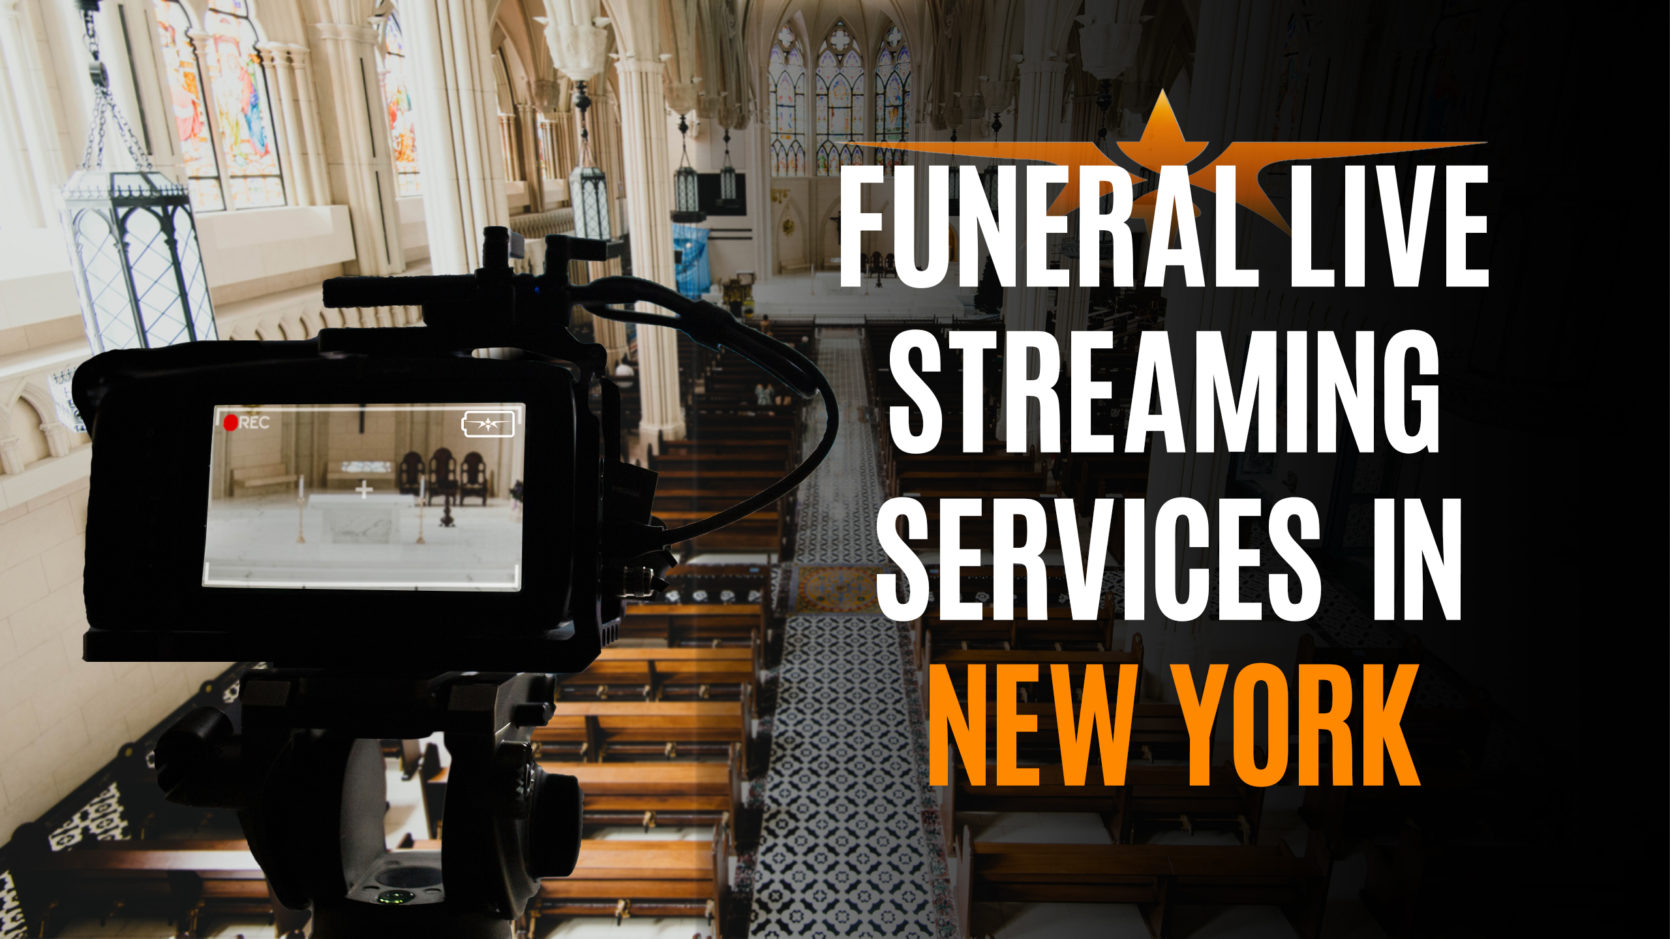 New York Funeral Live Streaming Services